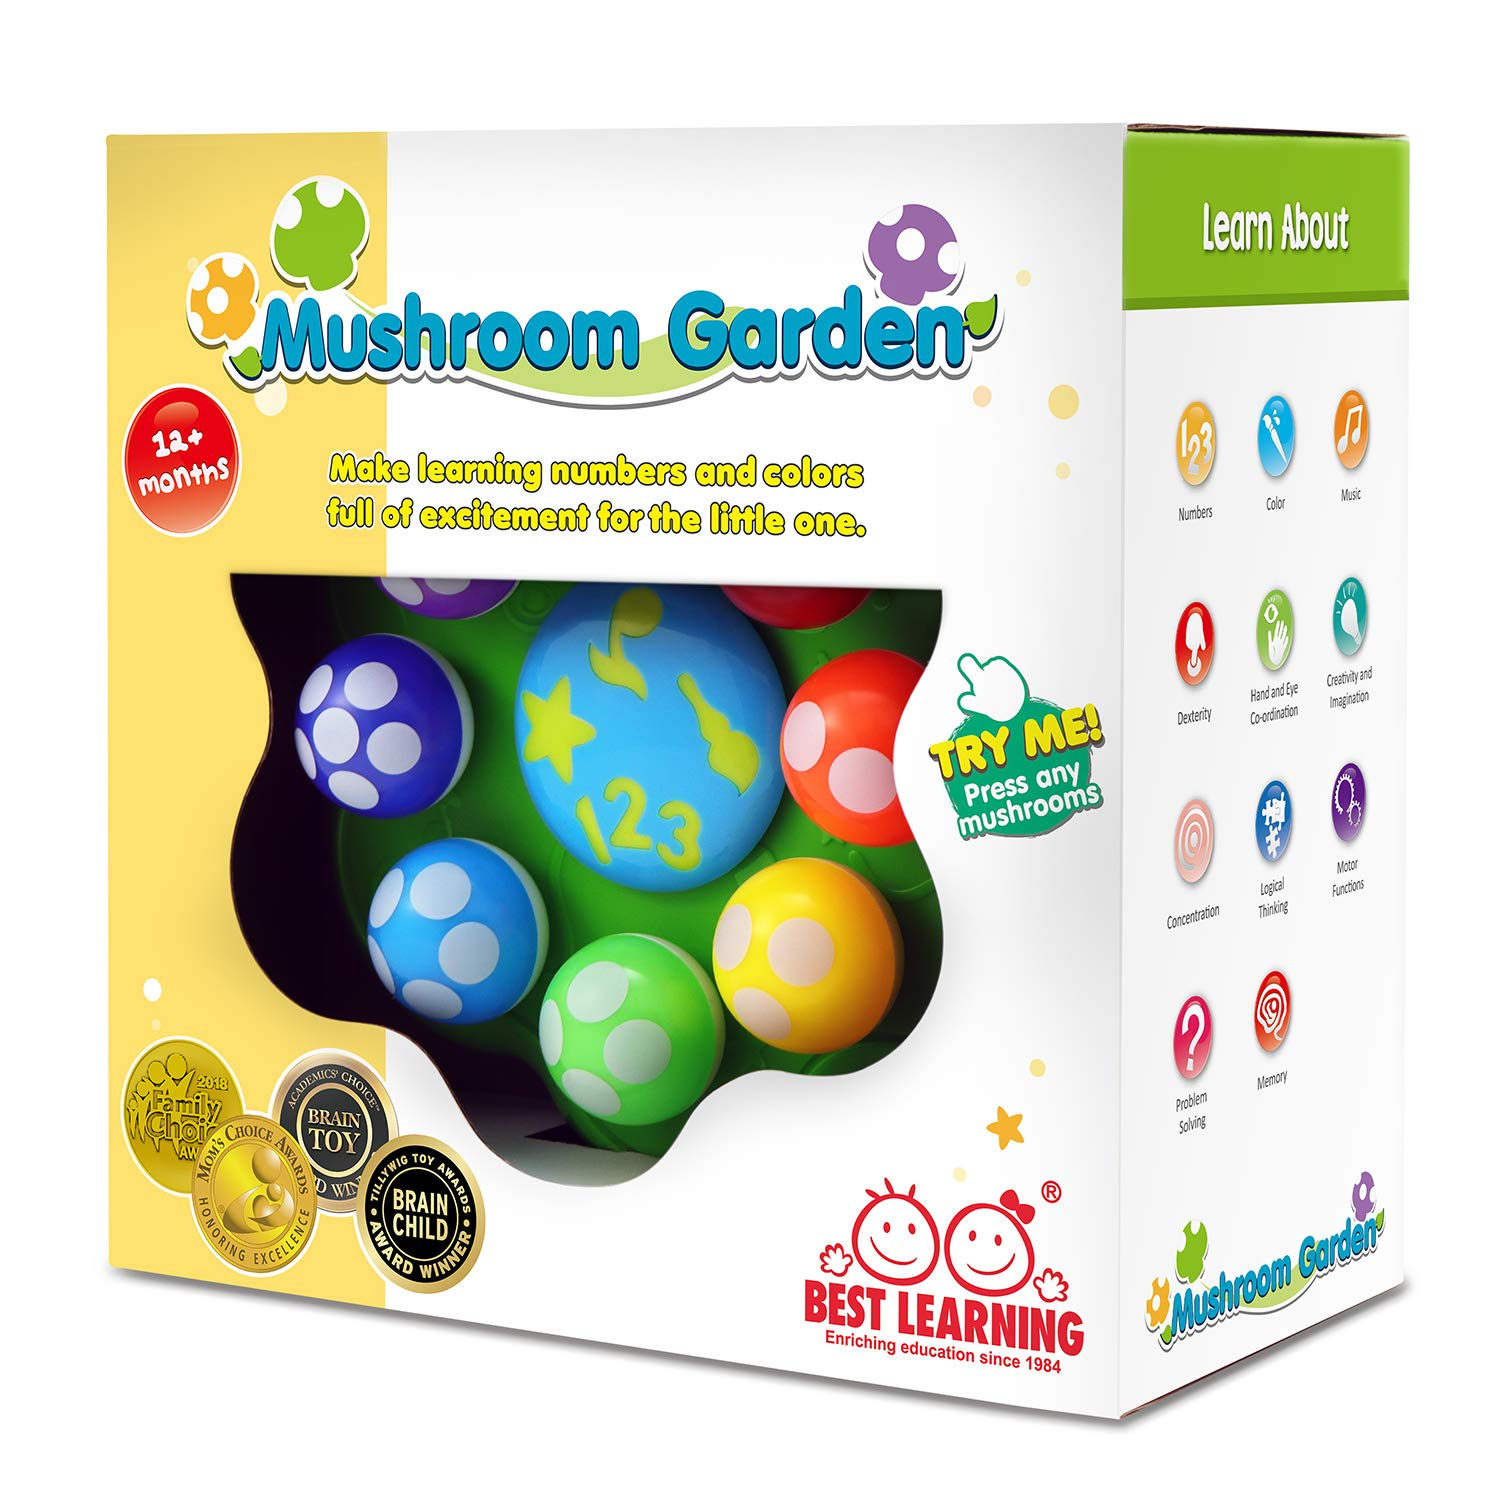 BEST LEARNING Mushroom Garden - Interactive Educational Light-Up Toddler Toys for 1 to 3 Years Old Infants & Toddlers - Colors, Numbers, Games & Music for Kids by BEST LEARNING (Image #8)